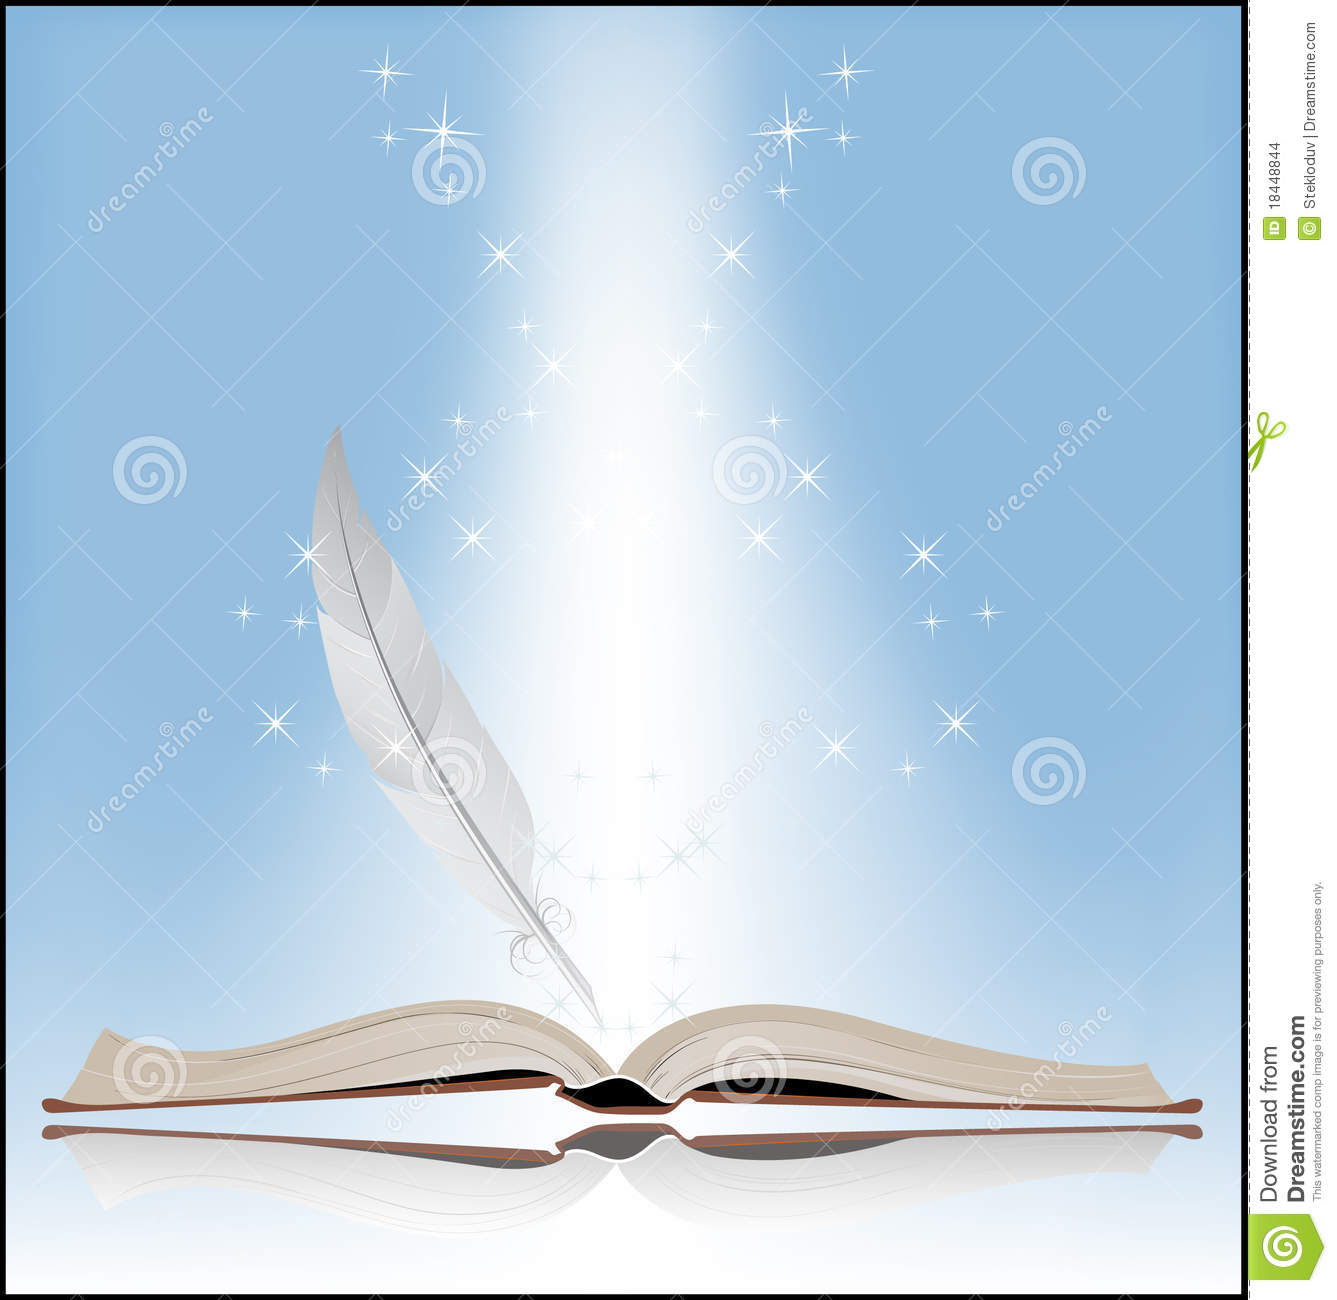 Symbol Of Knowledge Stock Vector Illustration Of Book 18448844